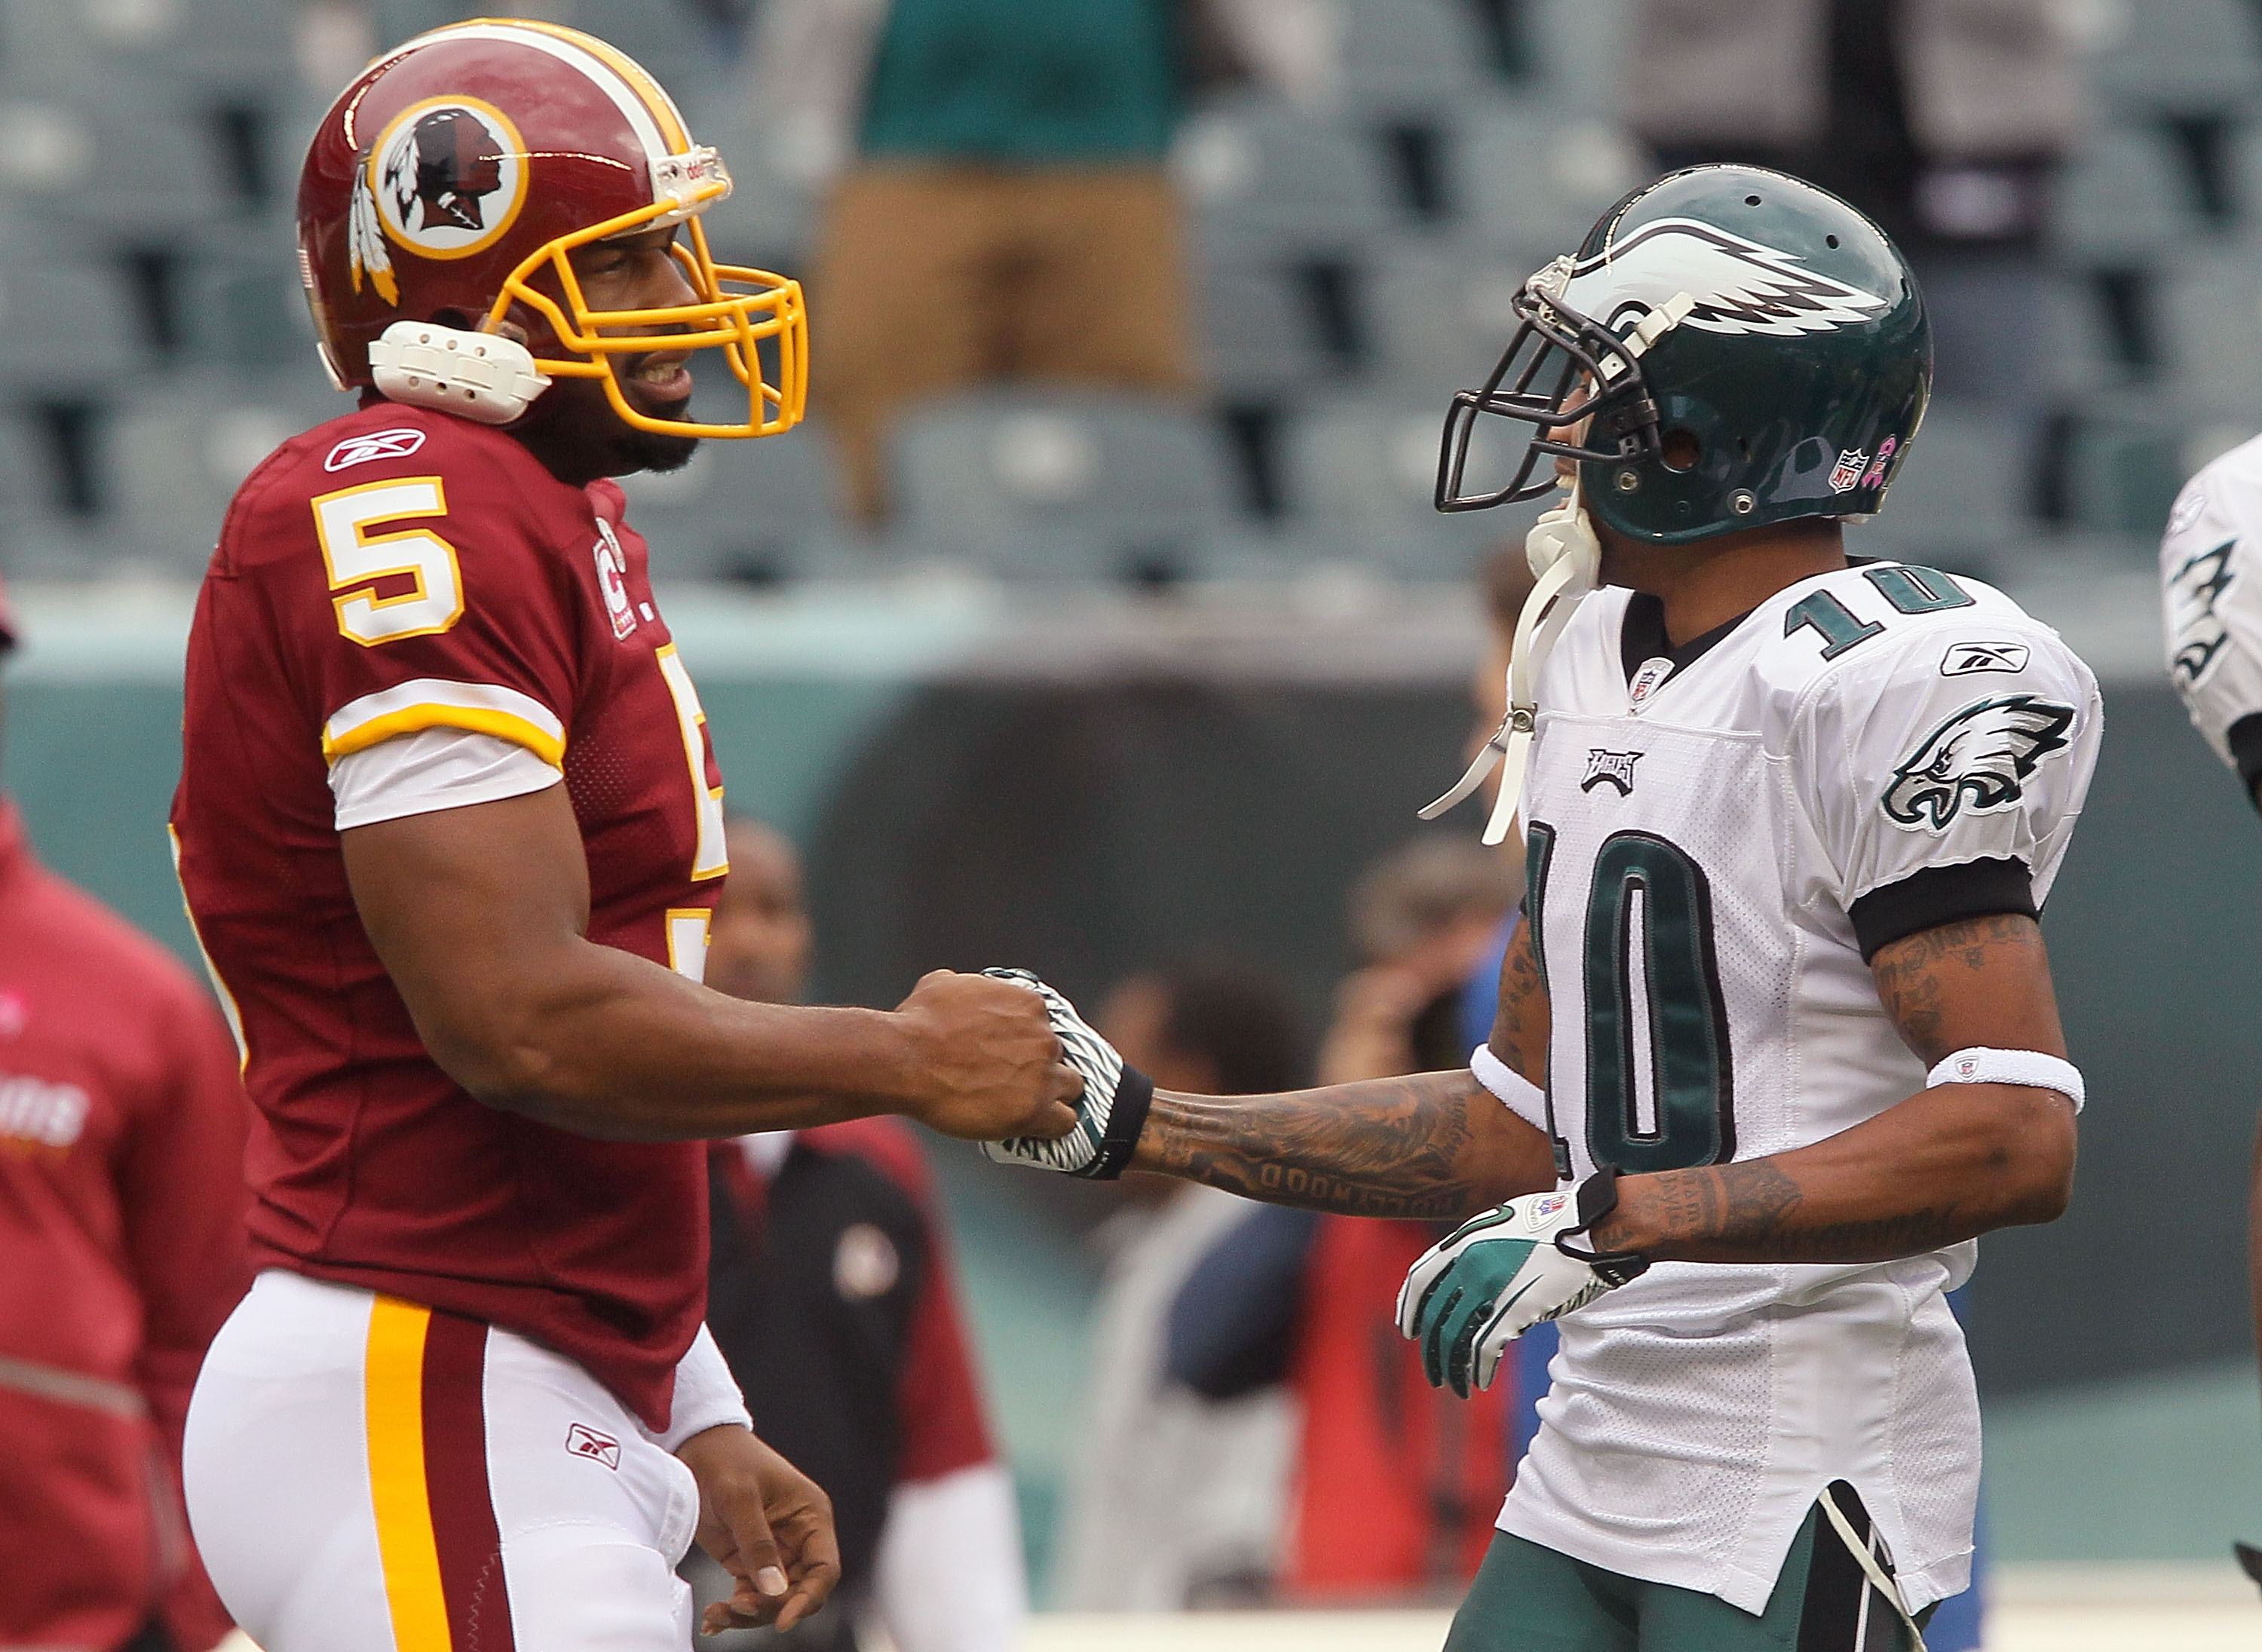 PHILADELPHIA - OCTOBER 03:  Donovan McNabb #5 of the Washington Redskins greets DeSean Jackson #10 of the Philadelphia Eagles prior to their game on October 3, 2010 at Lincoln Financial Field in Philadelphia, Pennsylvania.  (Photo by Jim McIsaac/Getty Ima